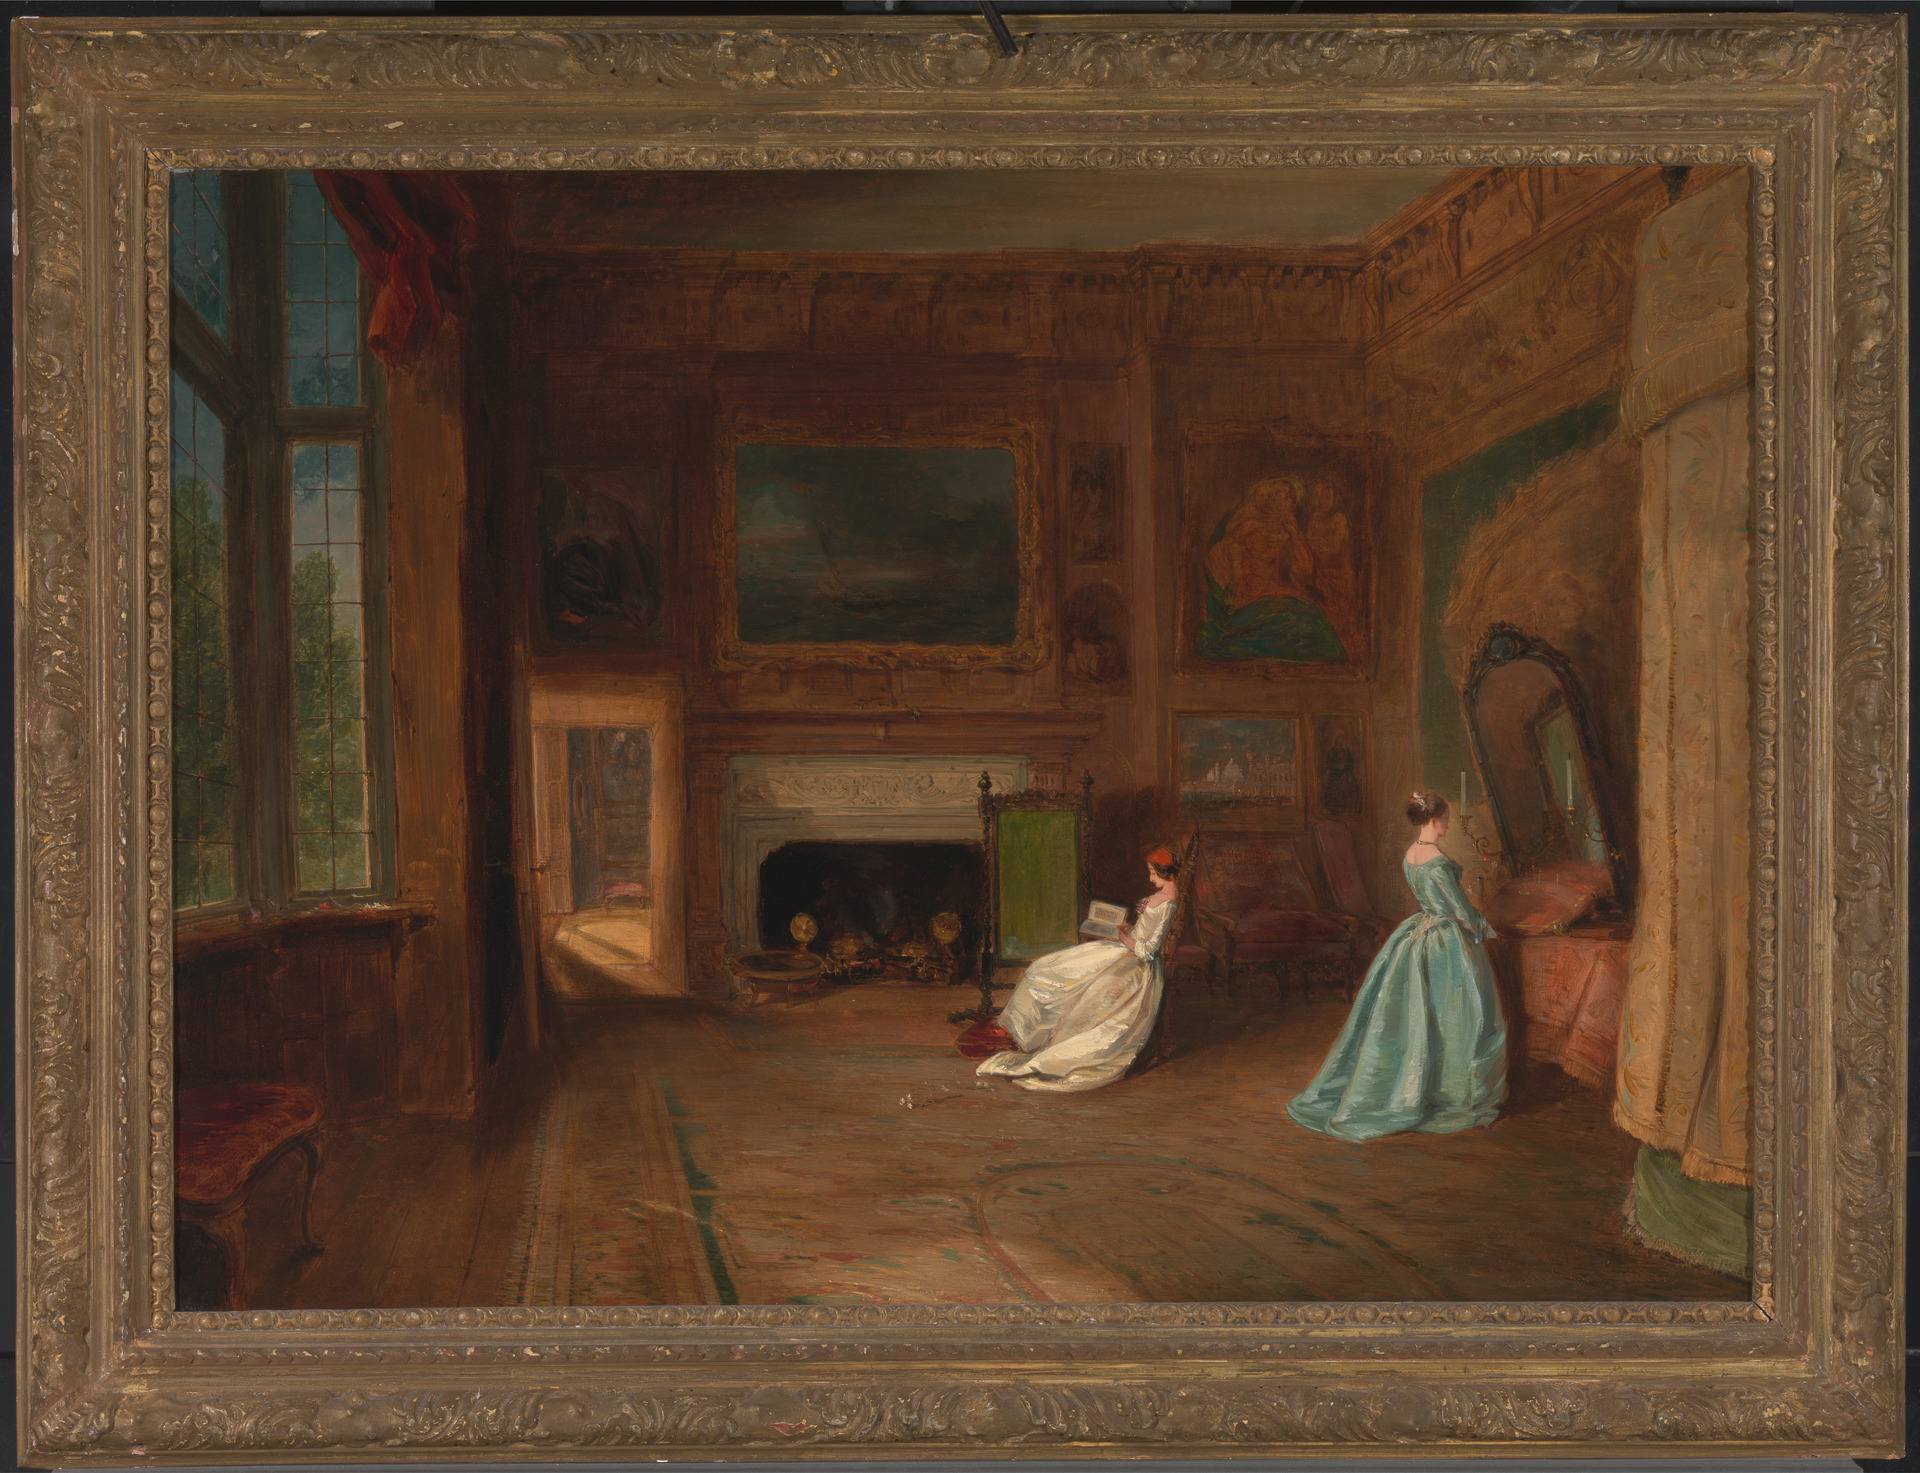 James Holland, The Lady Betty Germain Bedroom at Knole, Kent, 1845 (Yale Center for British Art)